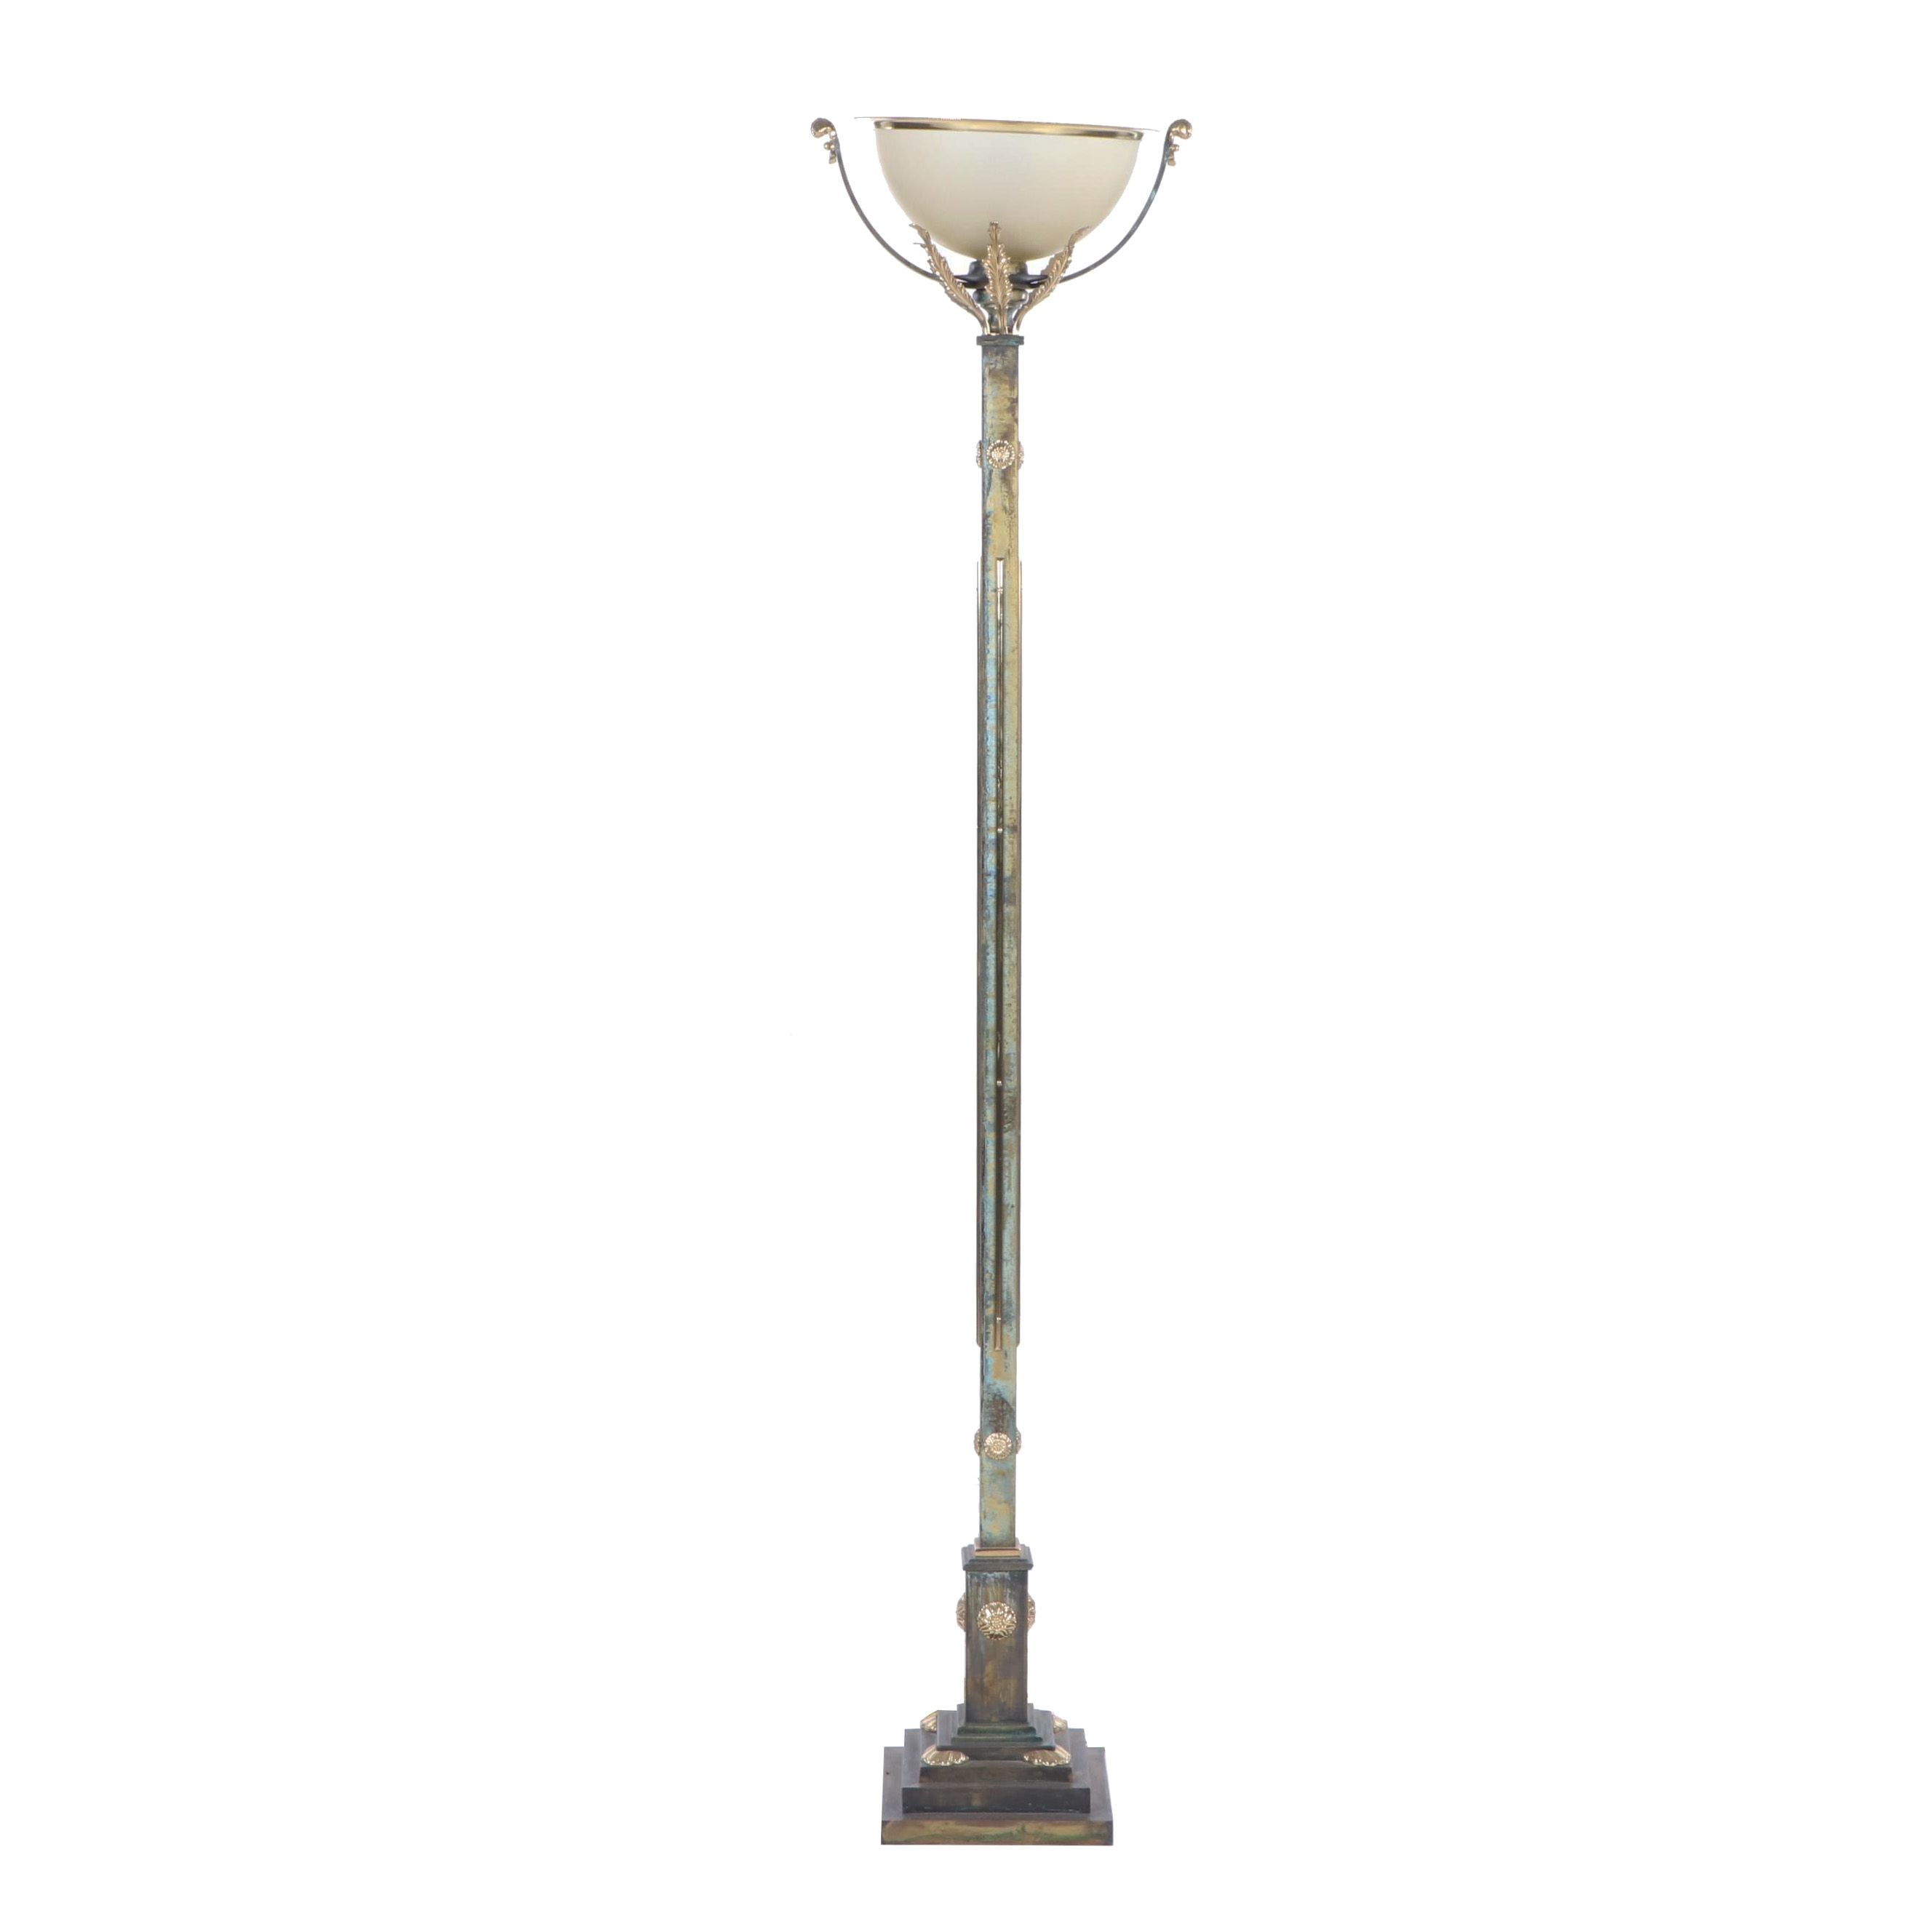 Neoclassical Torchiere Floor Lamp with Italian Blown Glass Shade